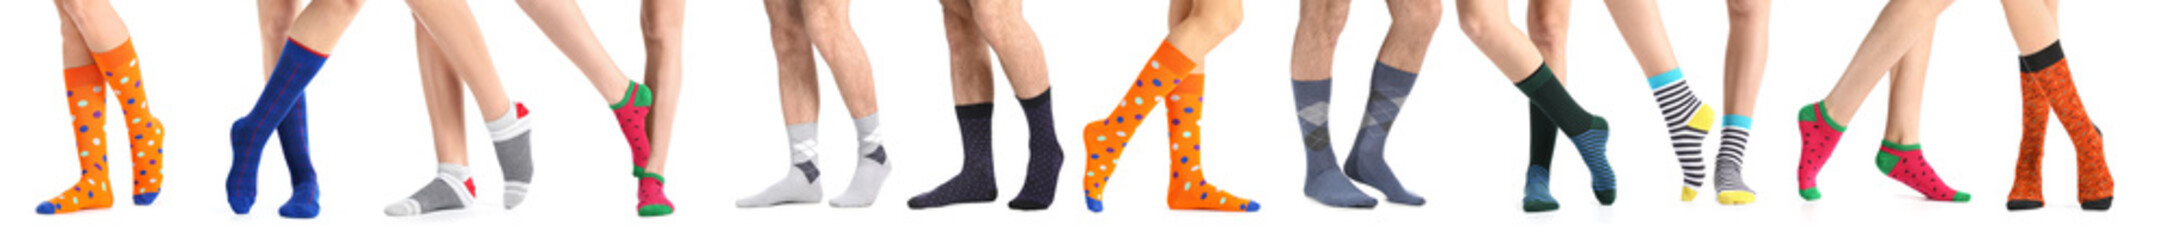 Legs of people in different socks on white background